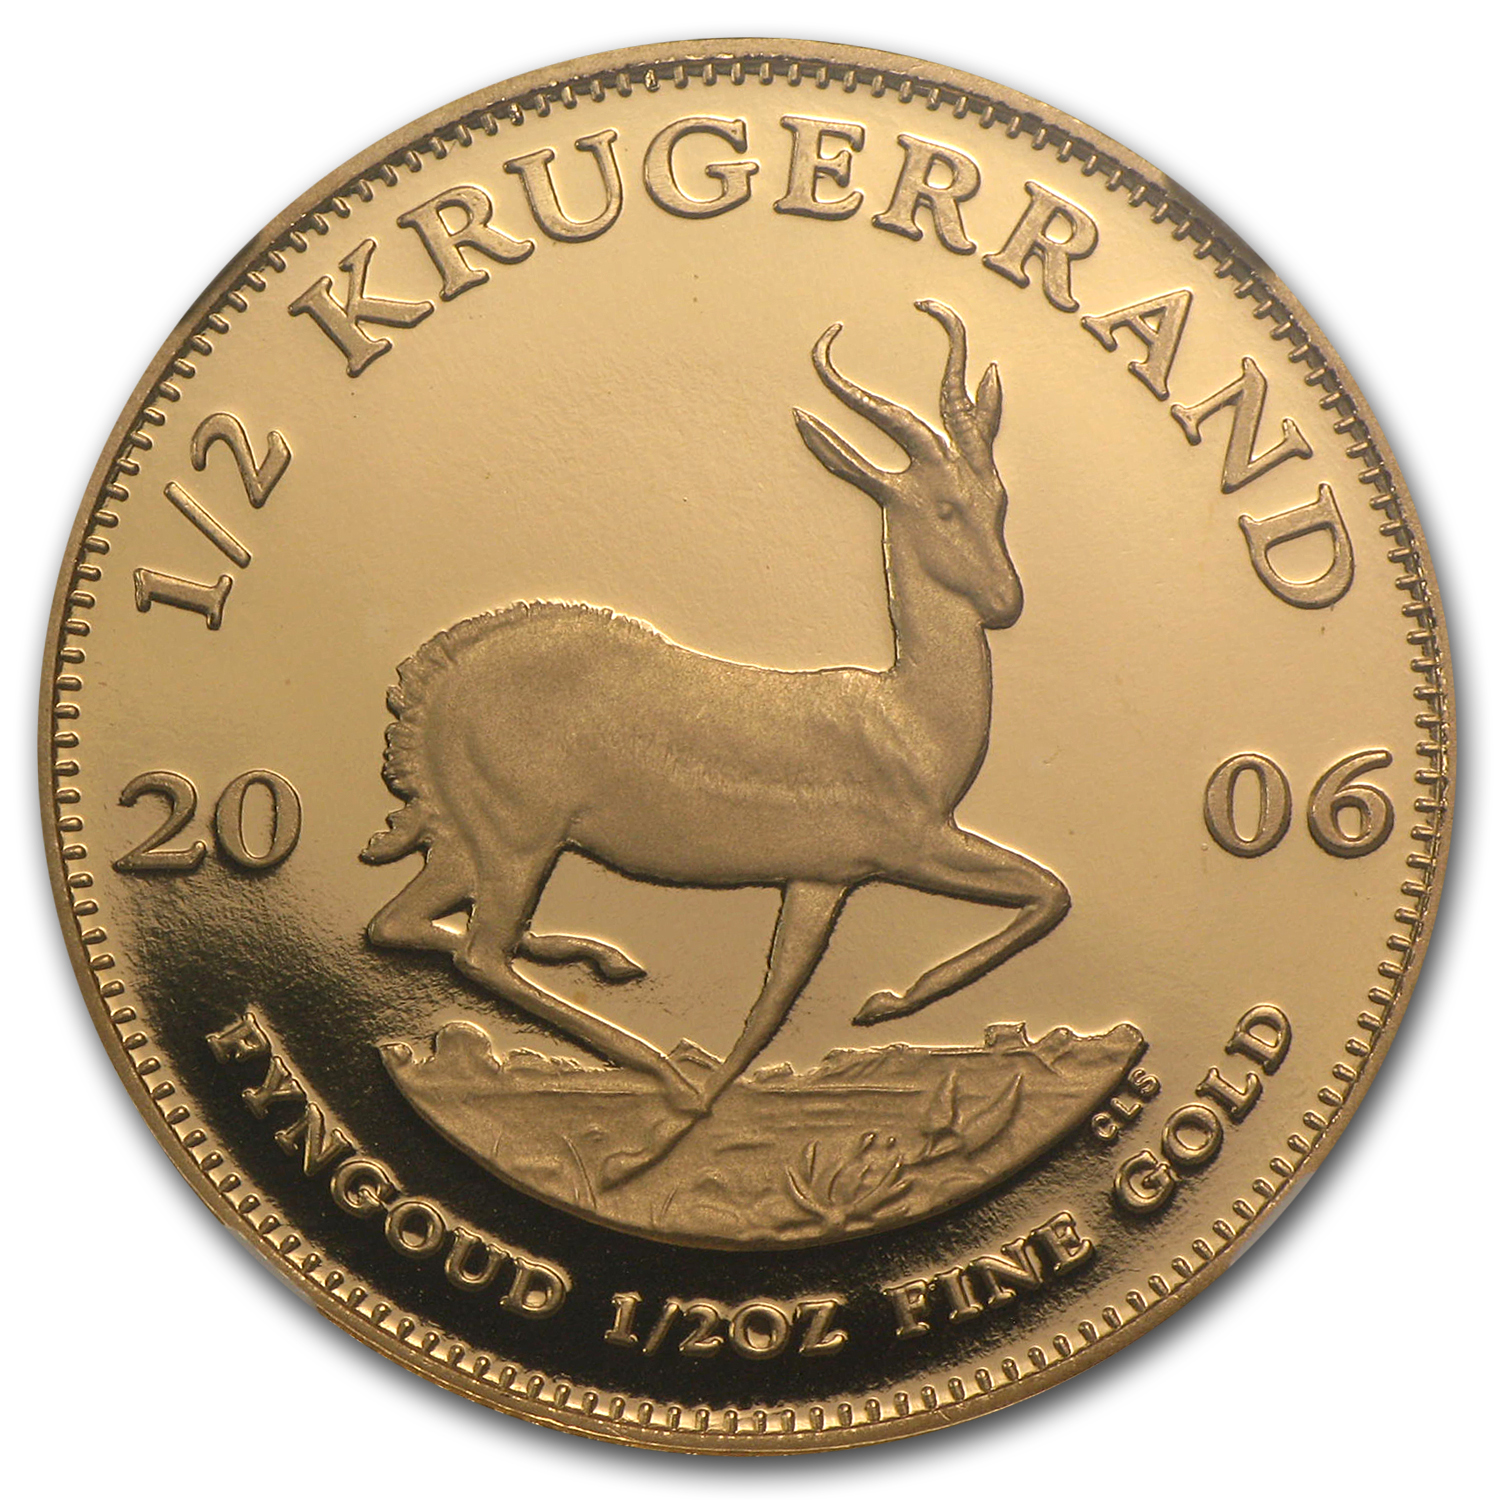 2006 1/2 oz Gold South African Krugerrand PF-69 NGC